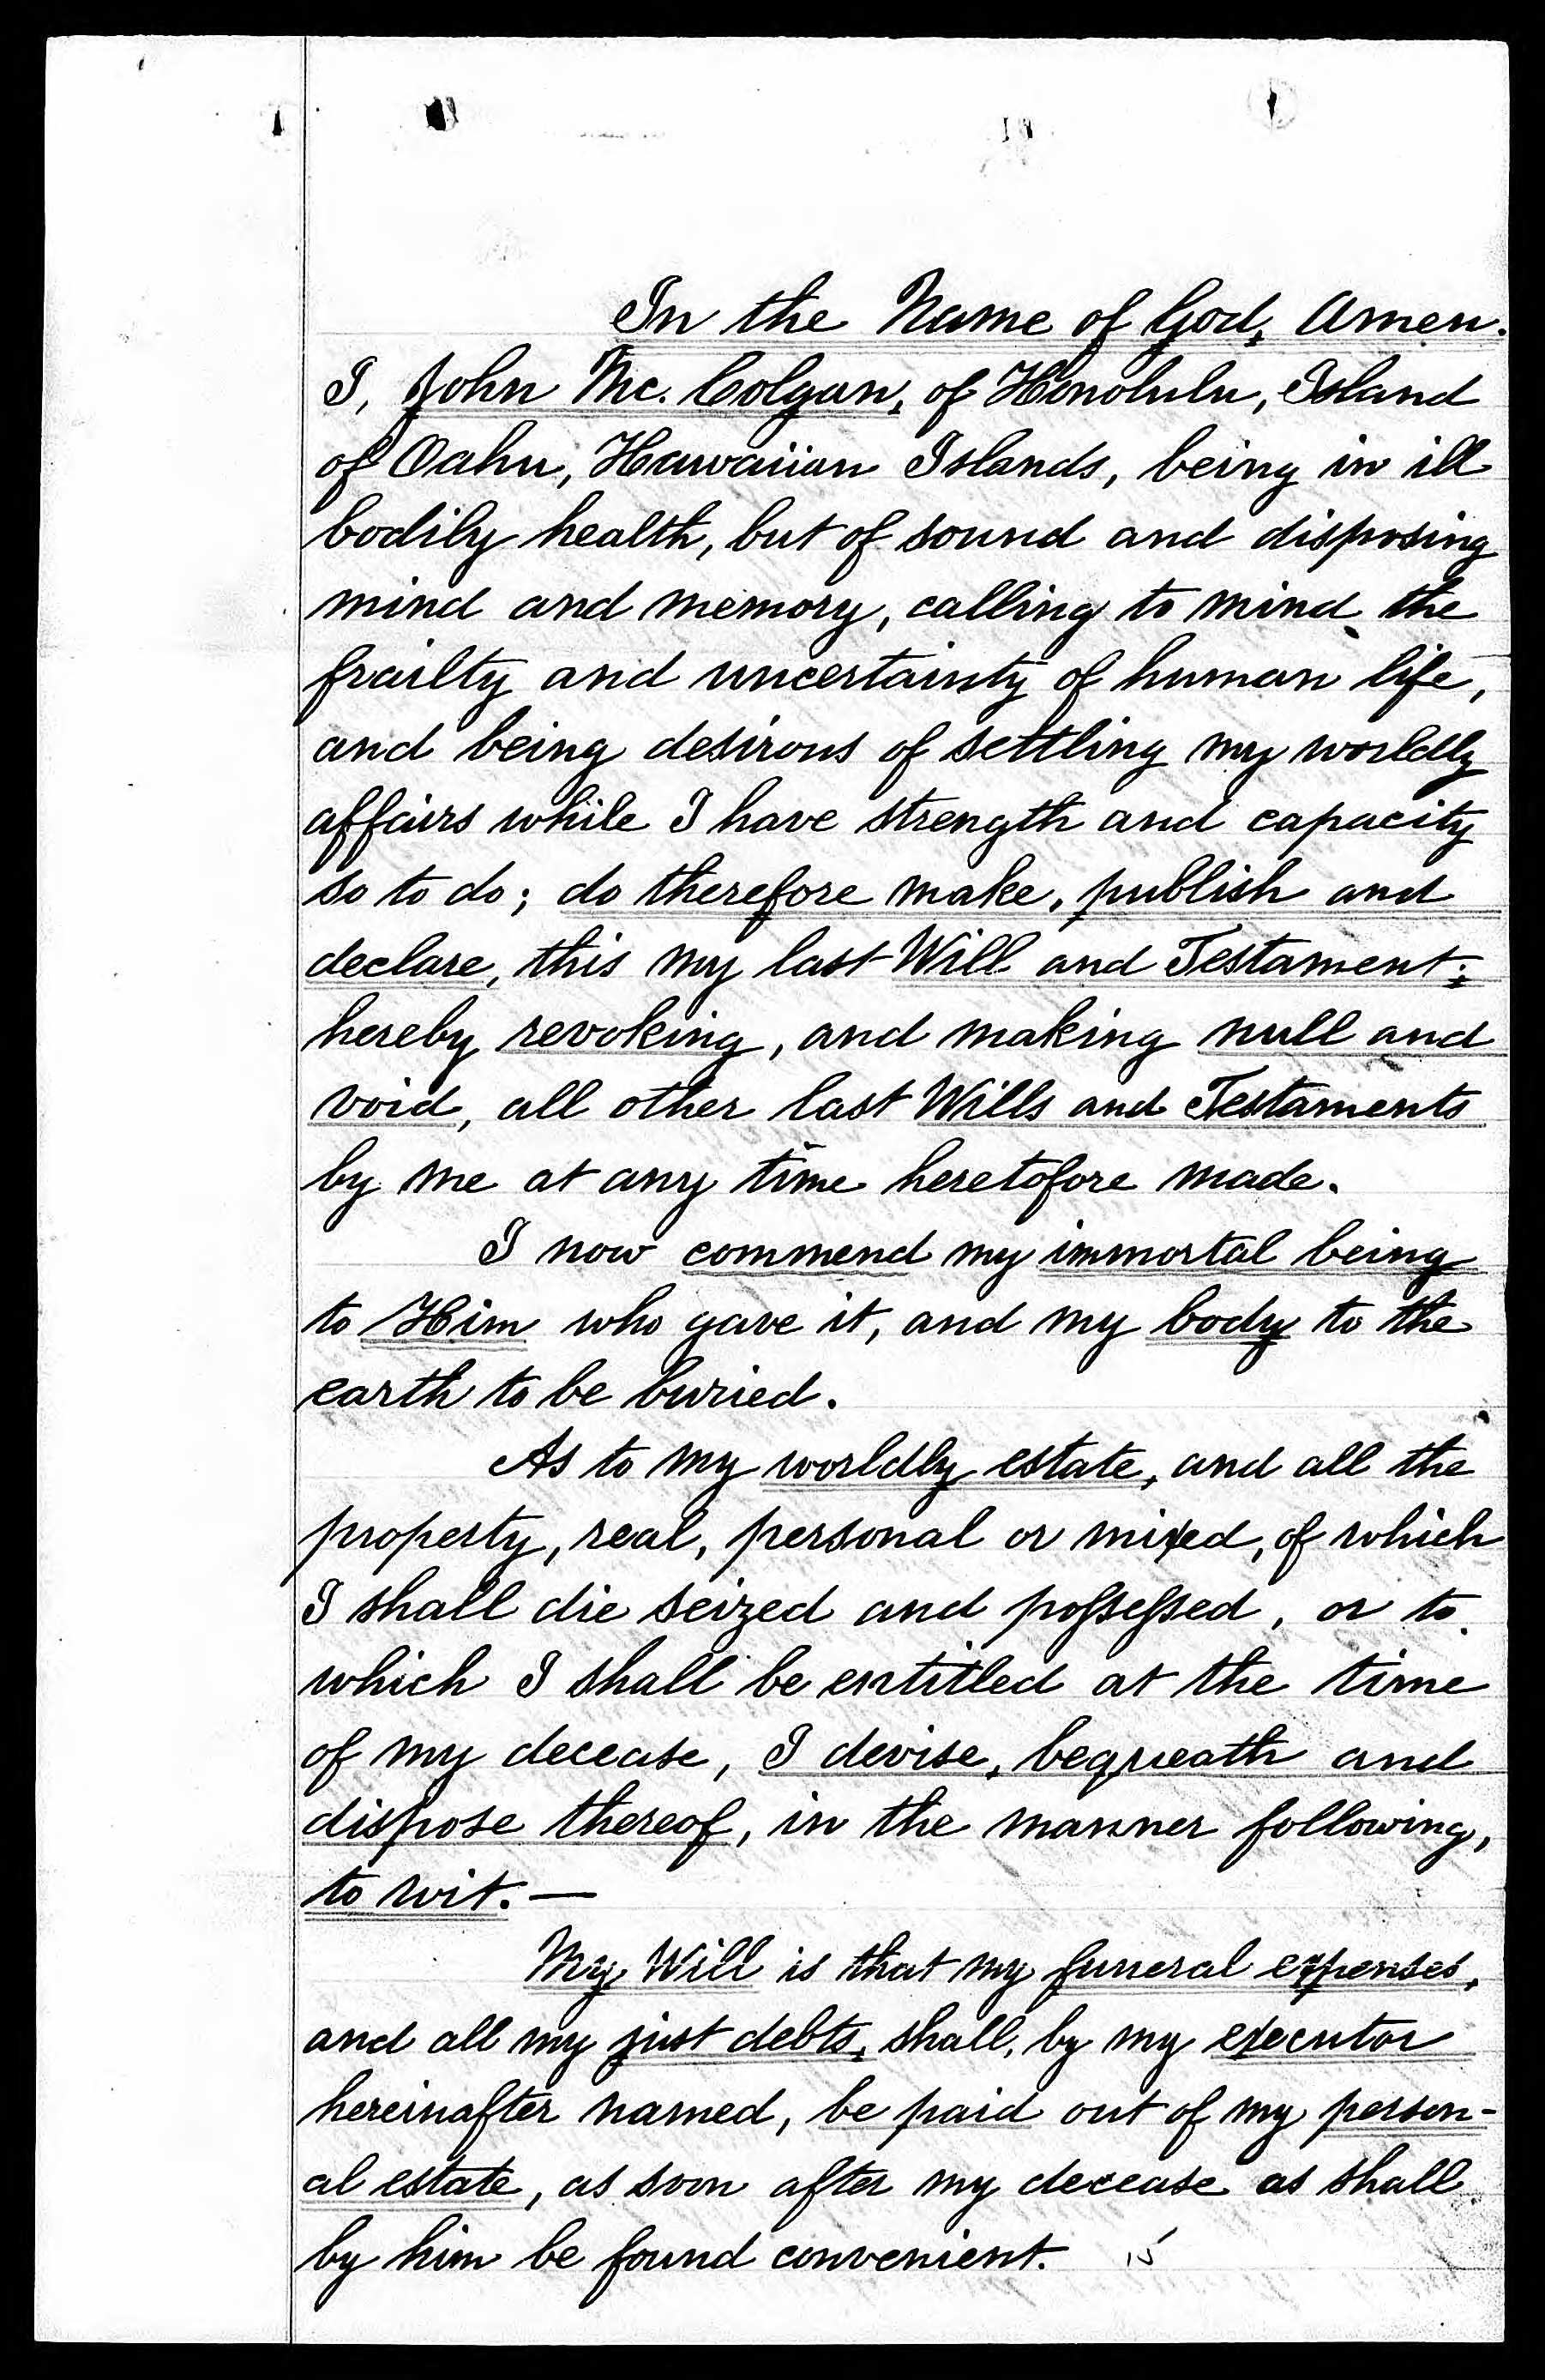 Last Will and Testament of John McColgan, 1890, Page 1